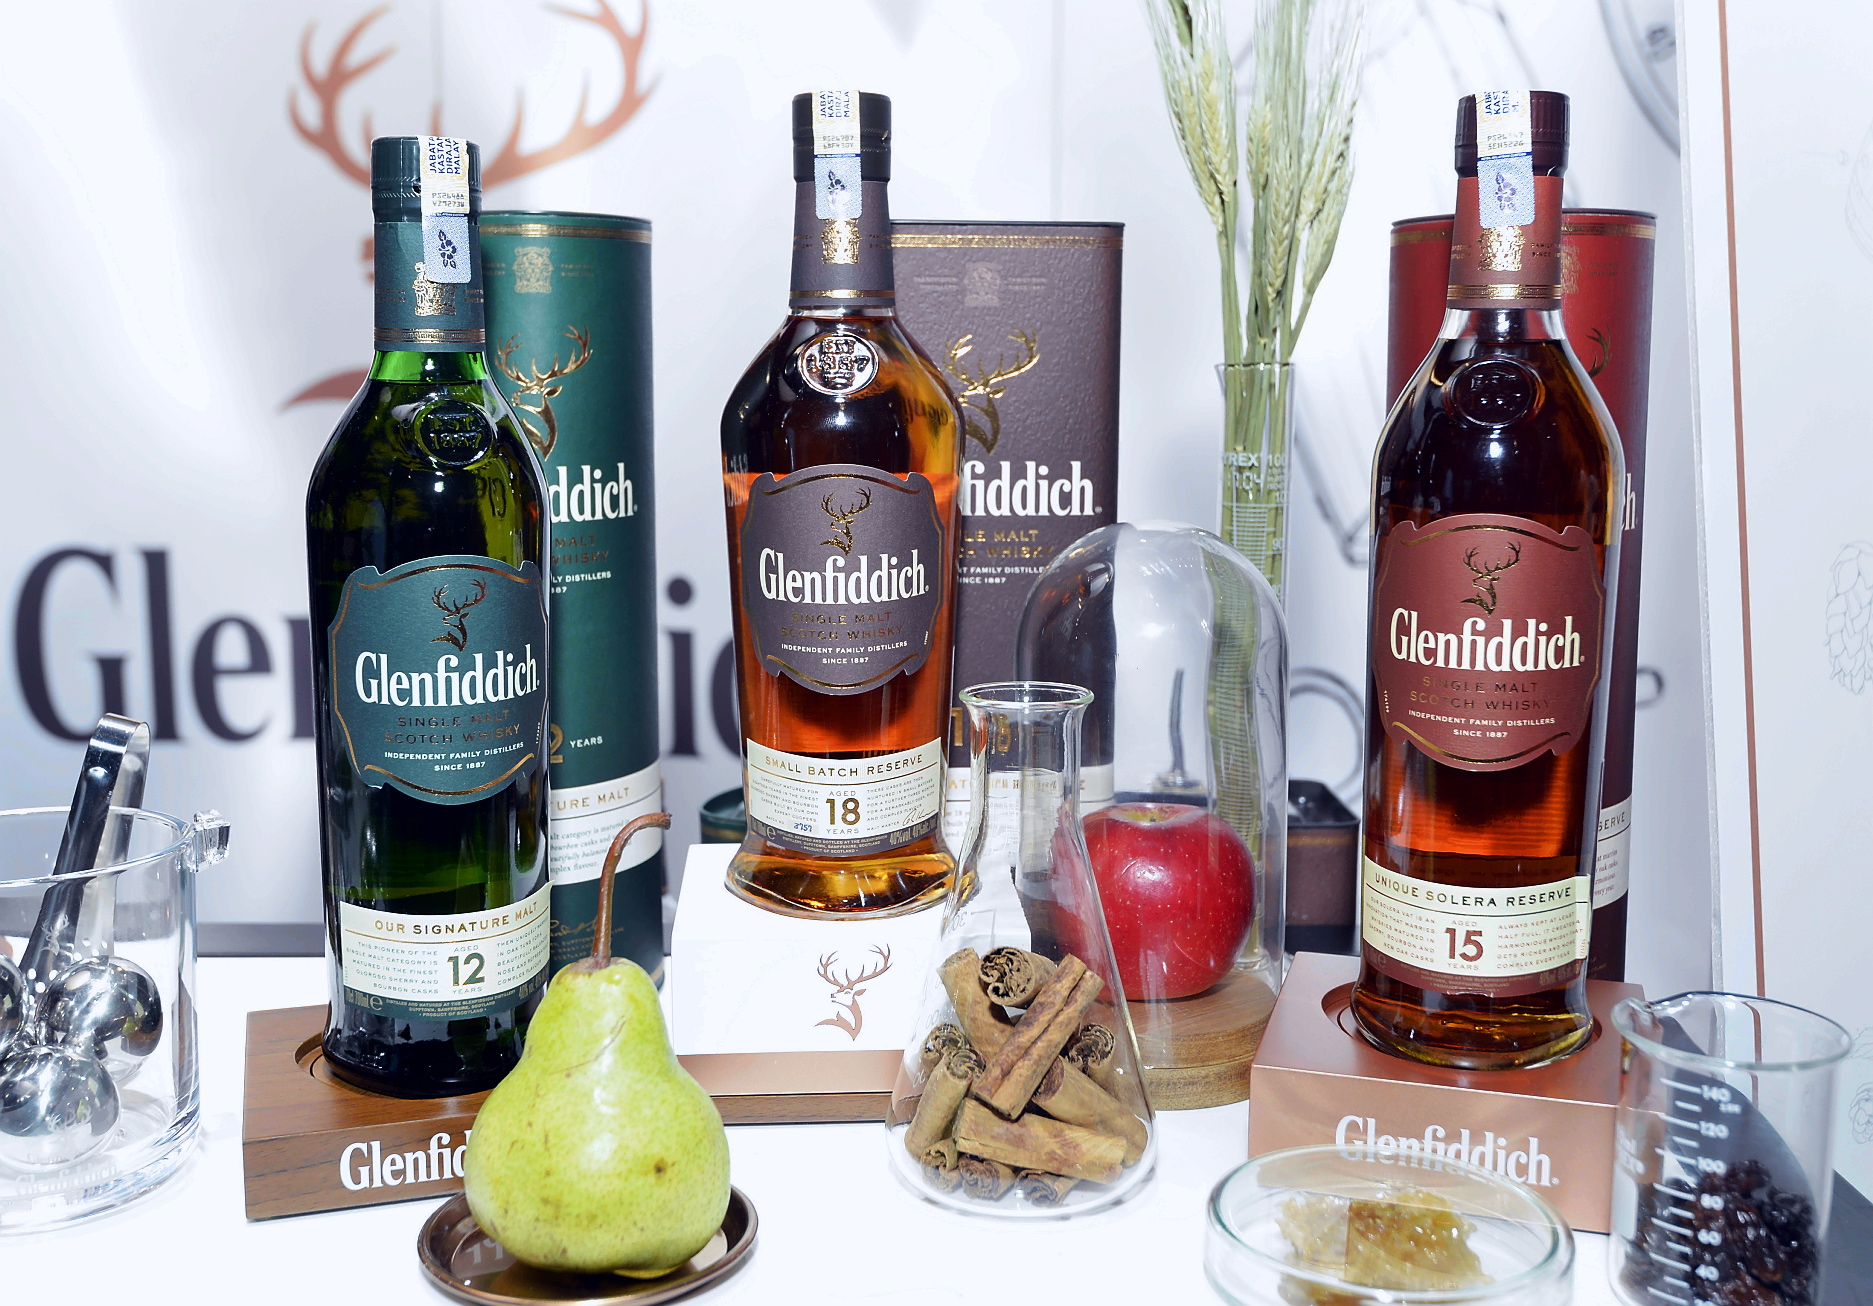 Glenfiddich's 12, 15, and 18-year-old were paired with a selection of chocolates were a delight.